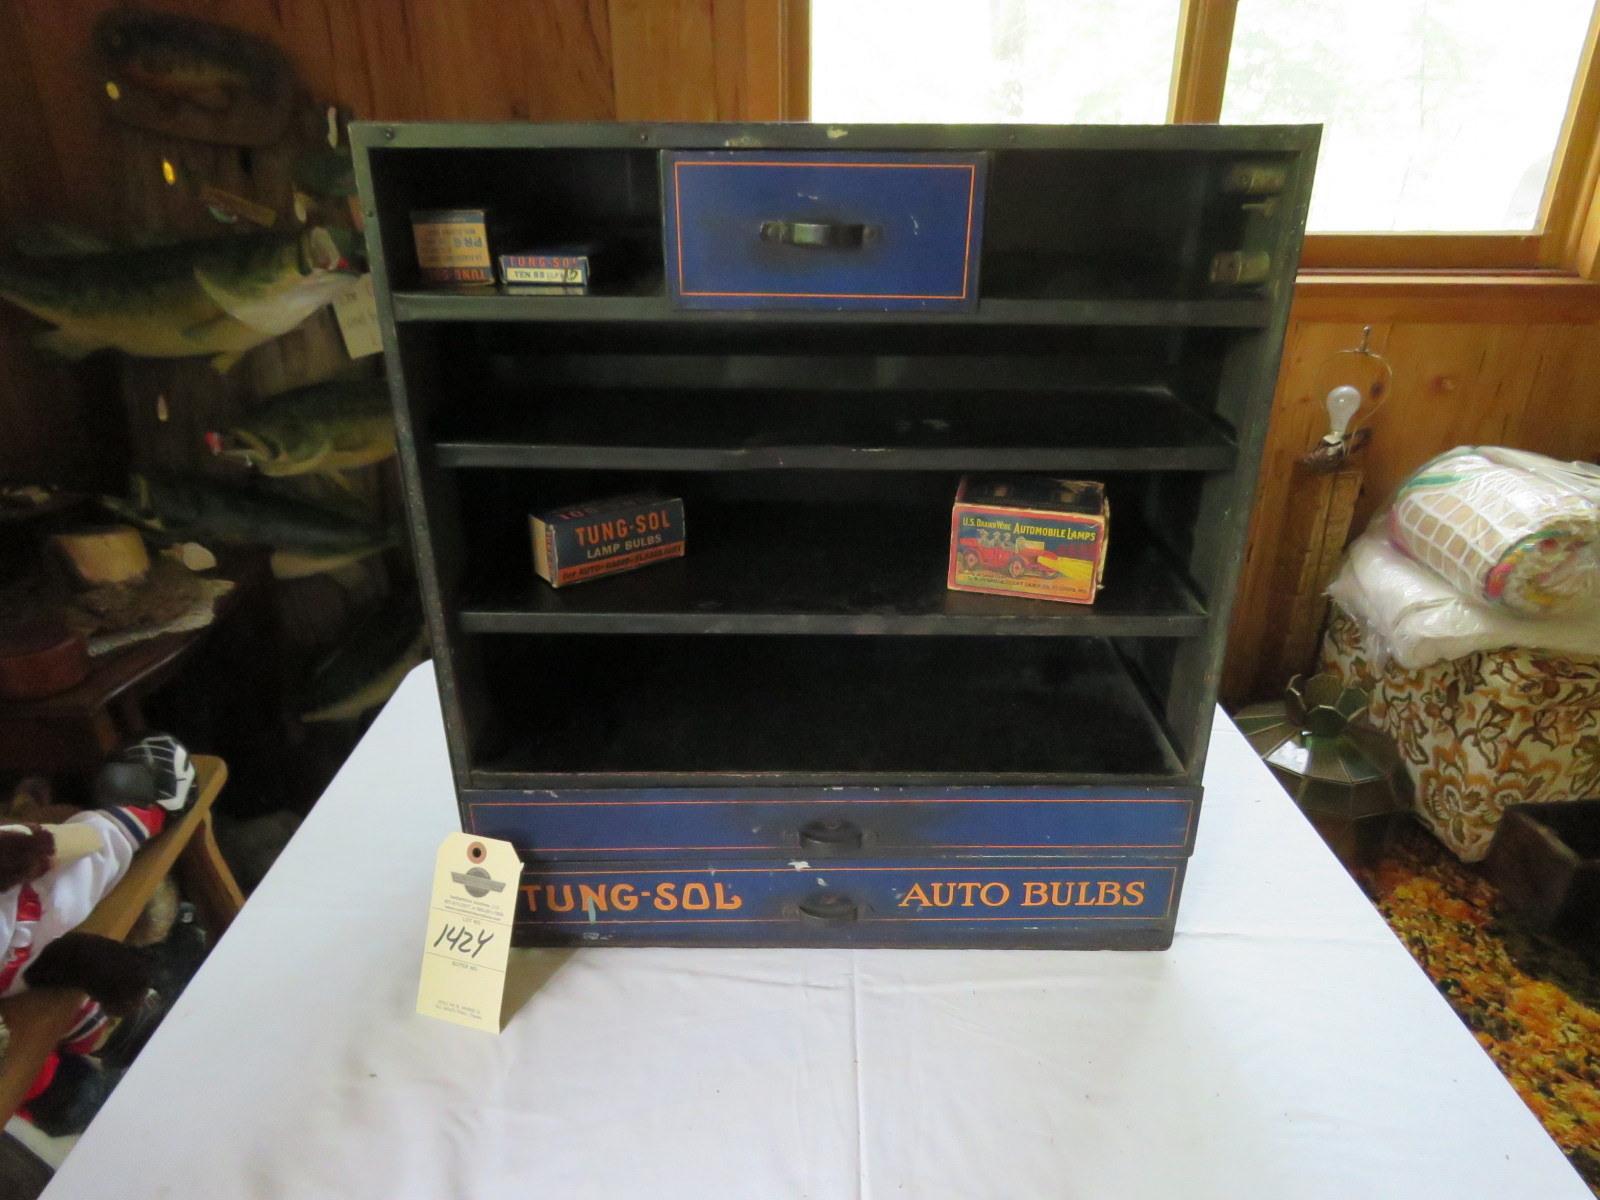 Vintage Metal Tung Sol Display Case - Image 1